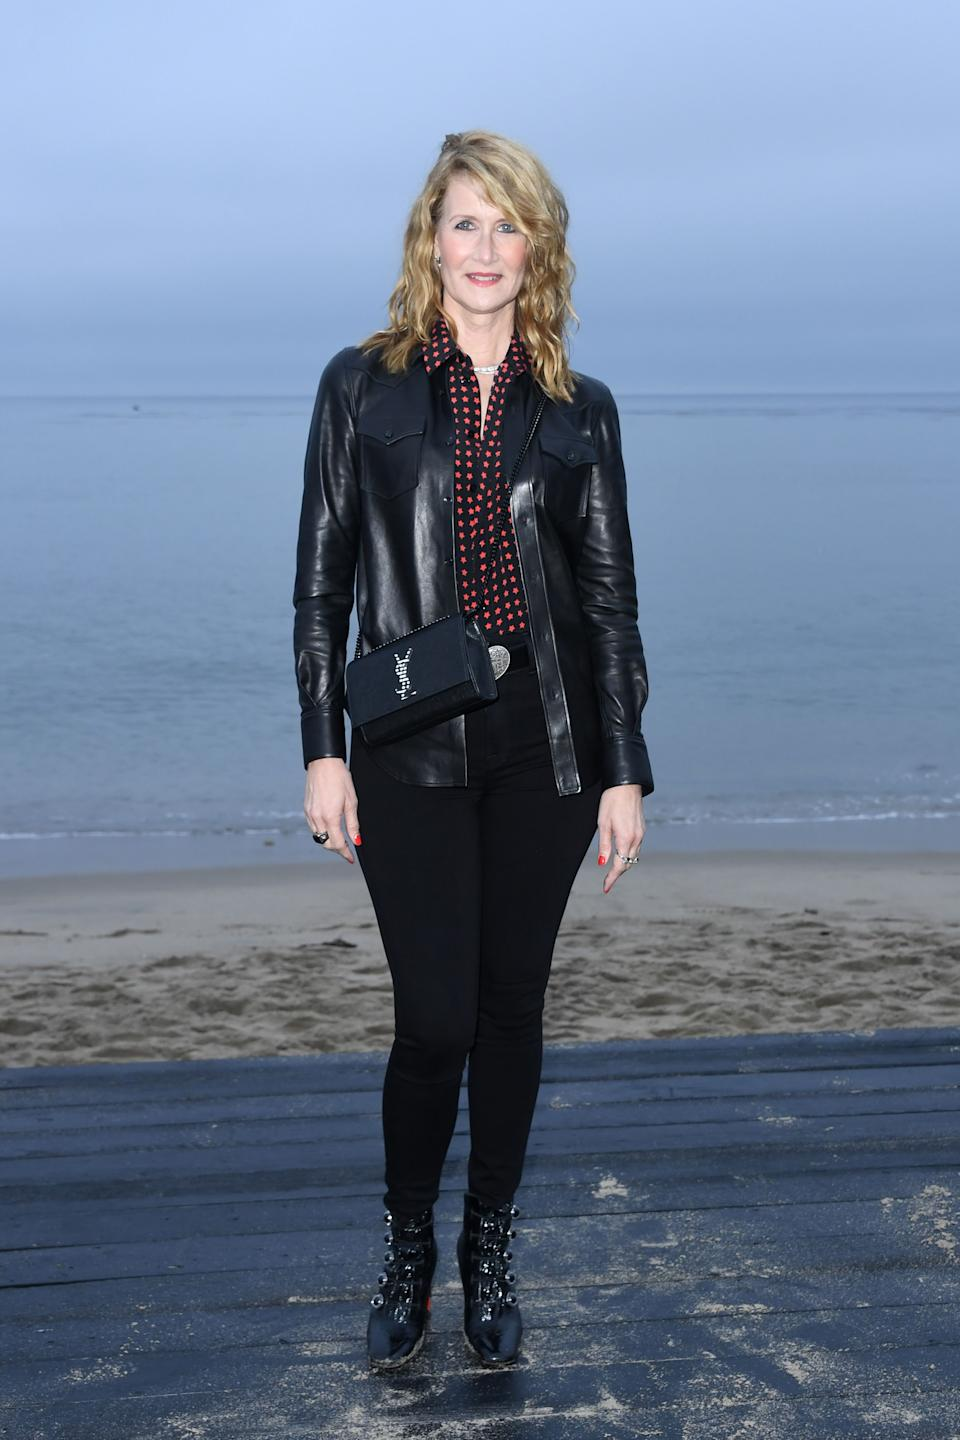 Laura Dern also bagged a front row spot at the Saint Laurent men's SS20 collections in a chic leather jacket, jeans and ankle boots - all by the fashion house of course. <em>[Photo: Getty]</em>